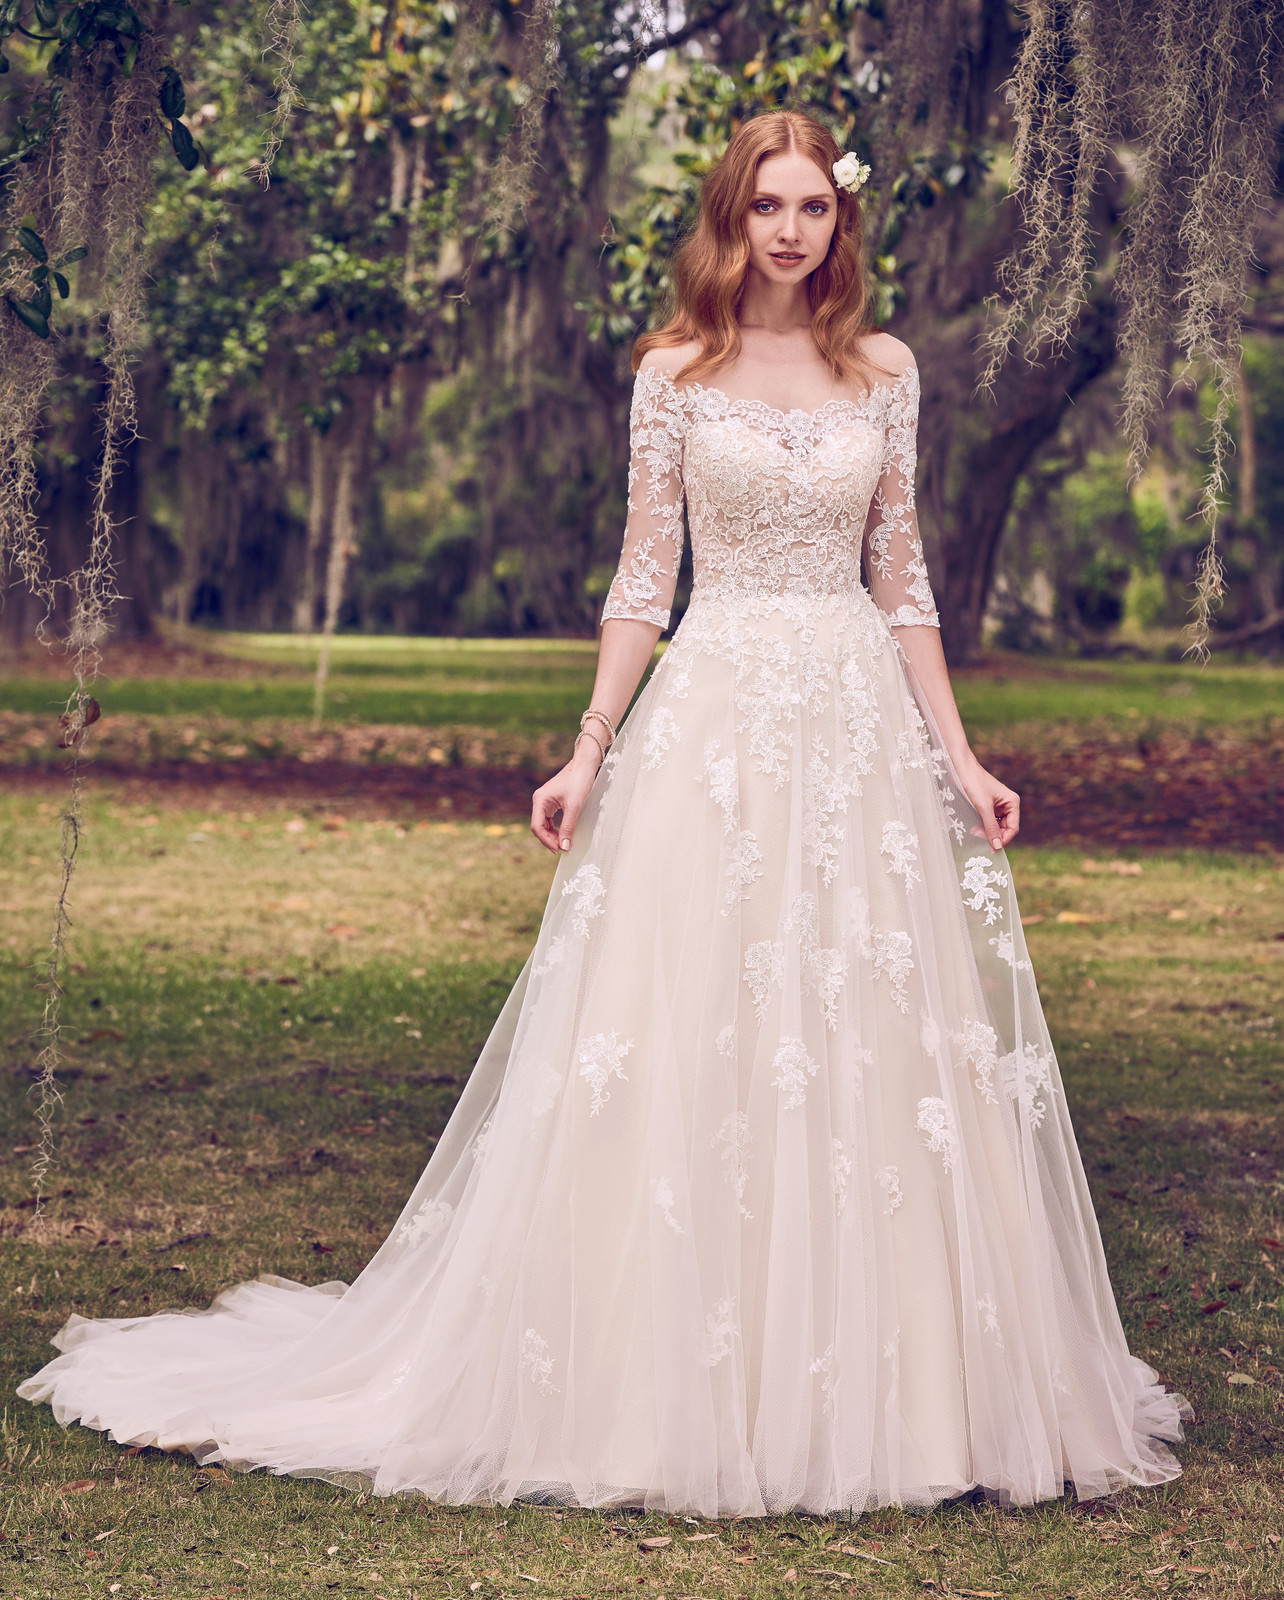 Bliss bridal bolton bridal gowns romantic lace motifs cascade over tulle in this illusion off the shoulder a line wedding dress lace motifs complete the illusion portrait neckline ombrellifo Gallery